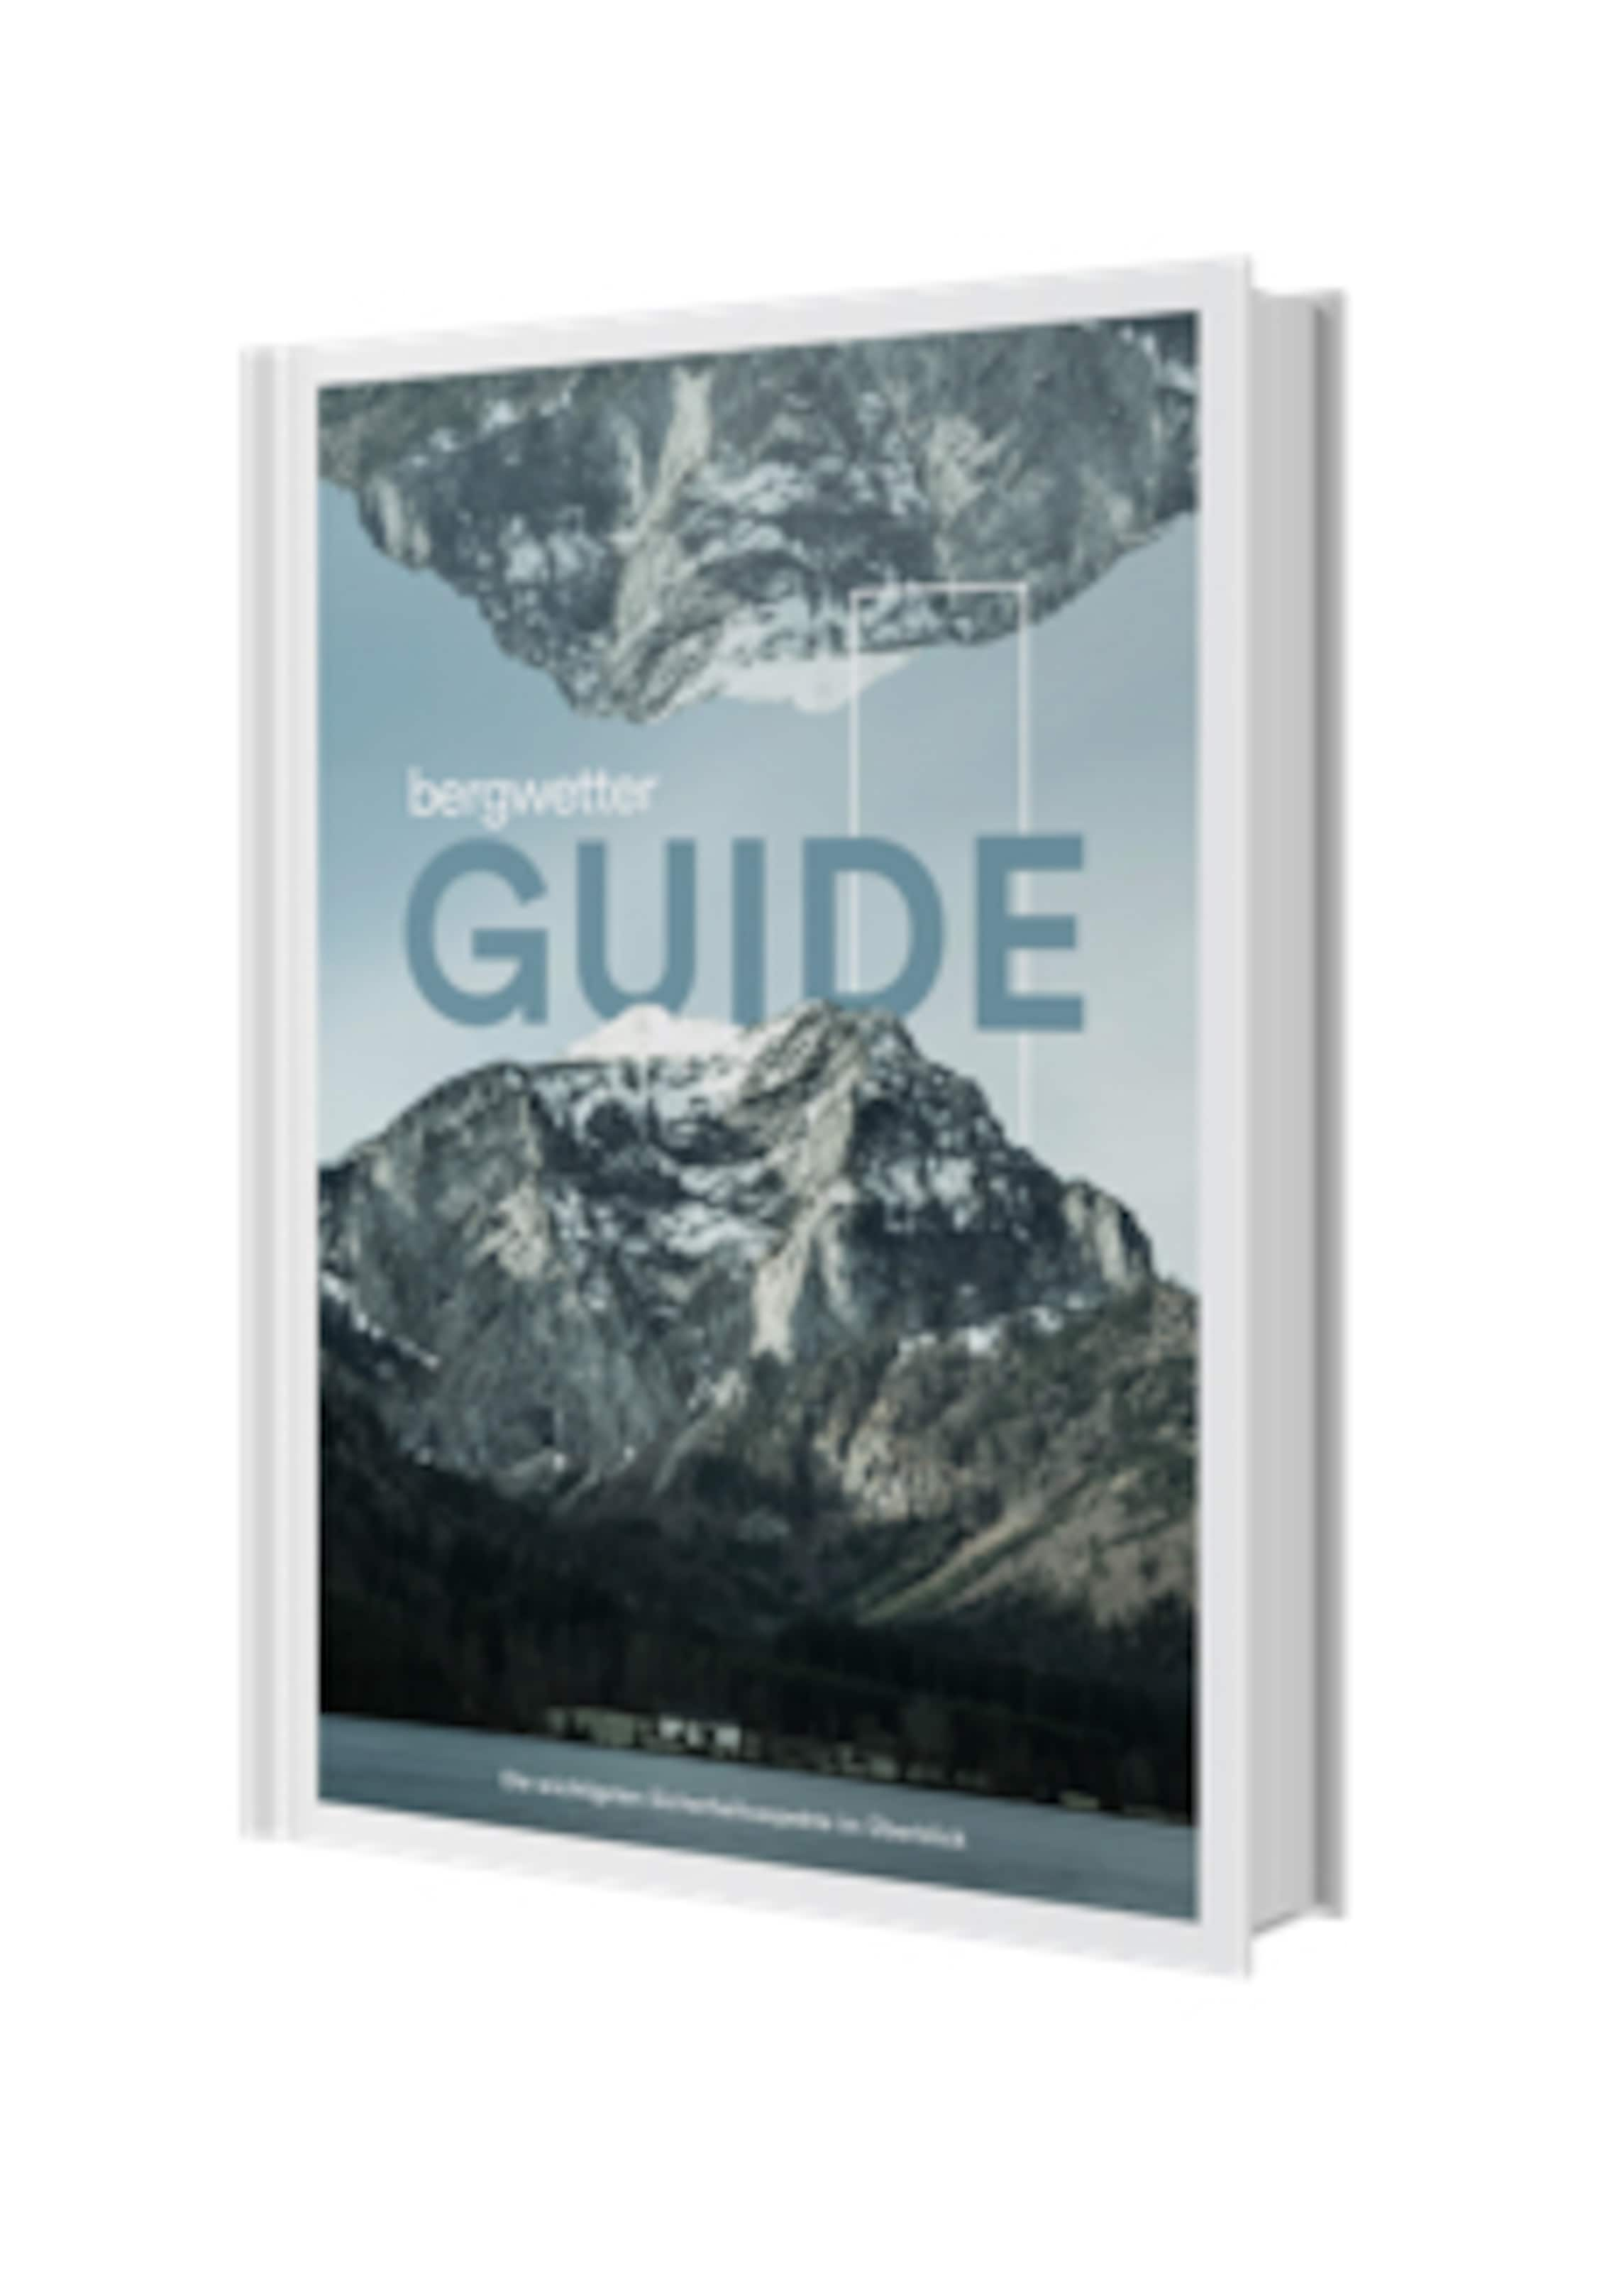 Bergwetter-Guide Ebook Cover